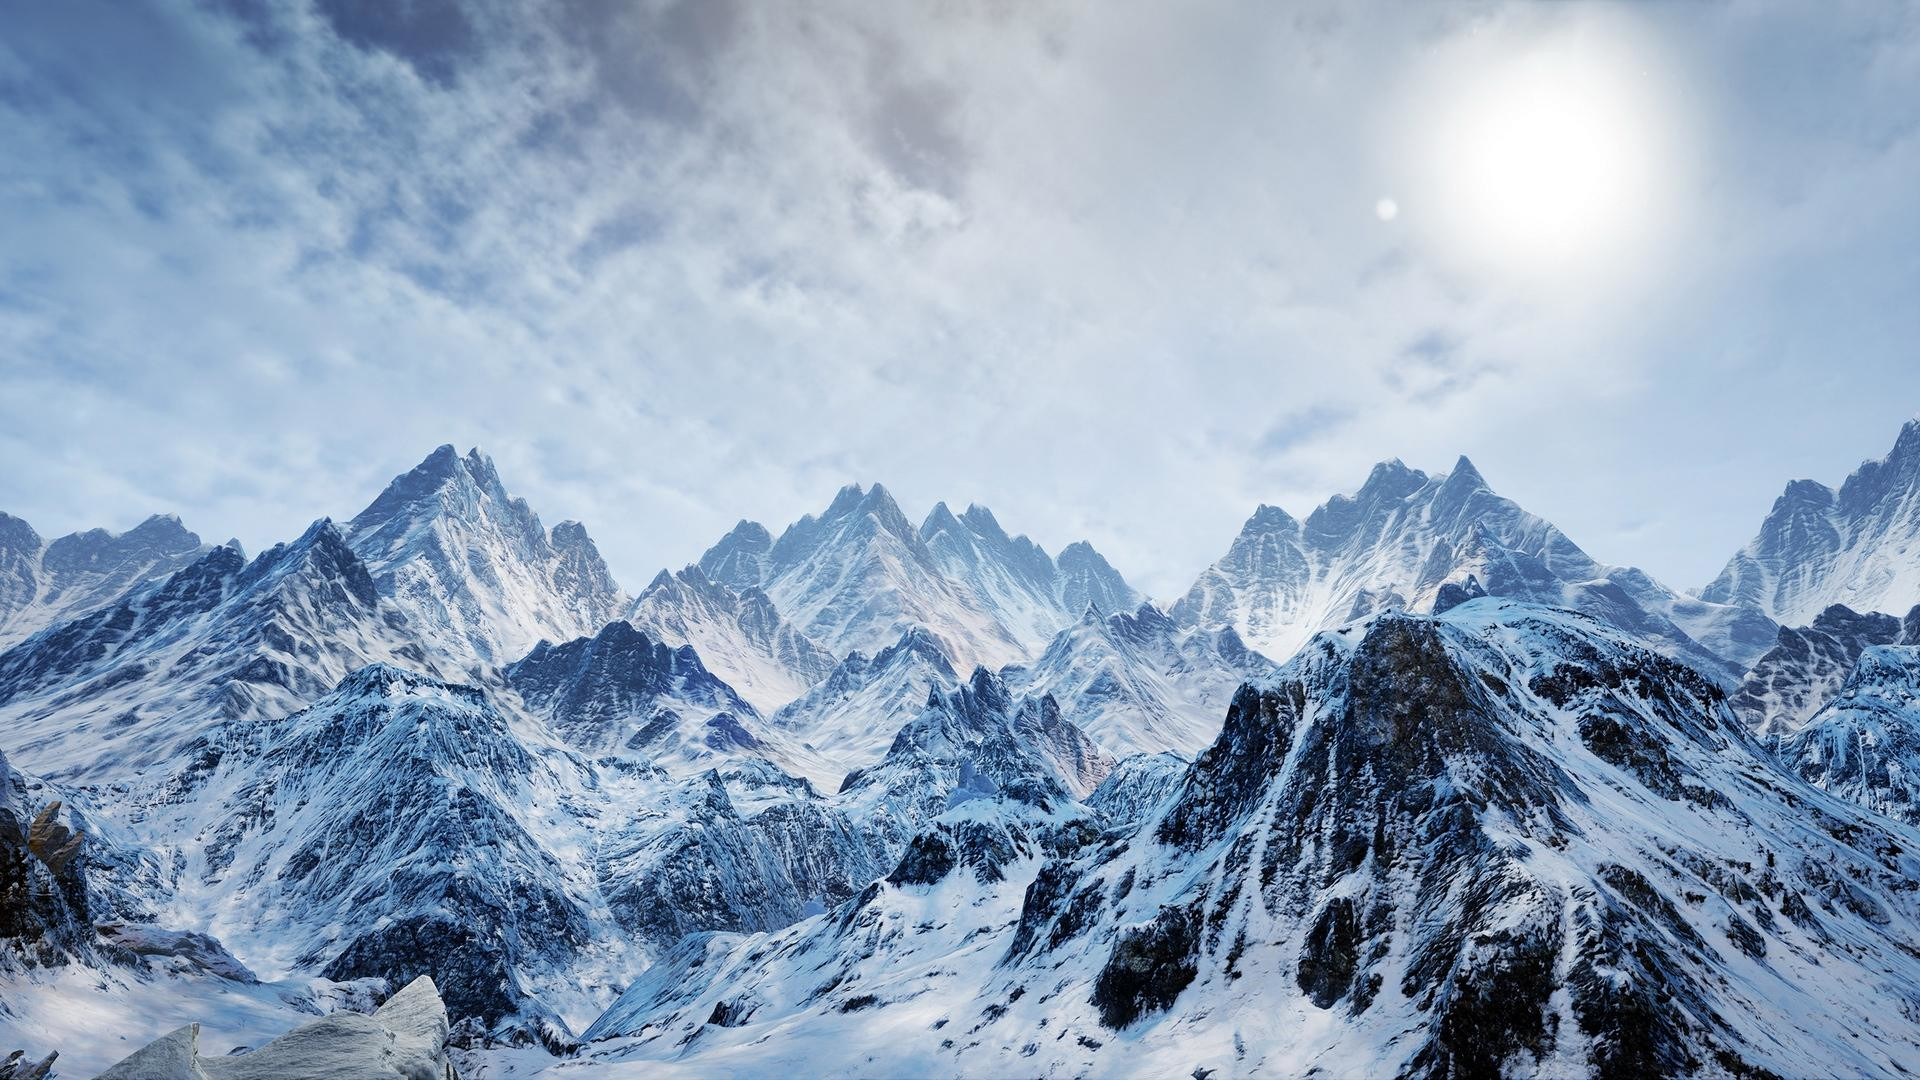 Ice and Snow Mountains Theme Ice and Snow Mountains Background Ice and Snow  Mountains Wallpaper